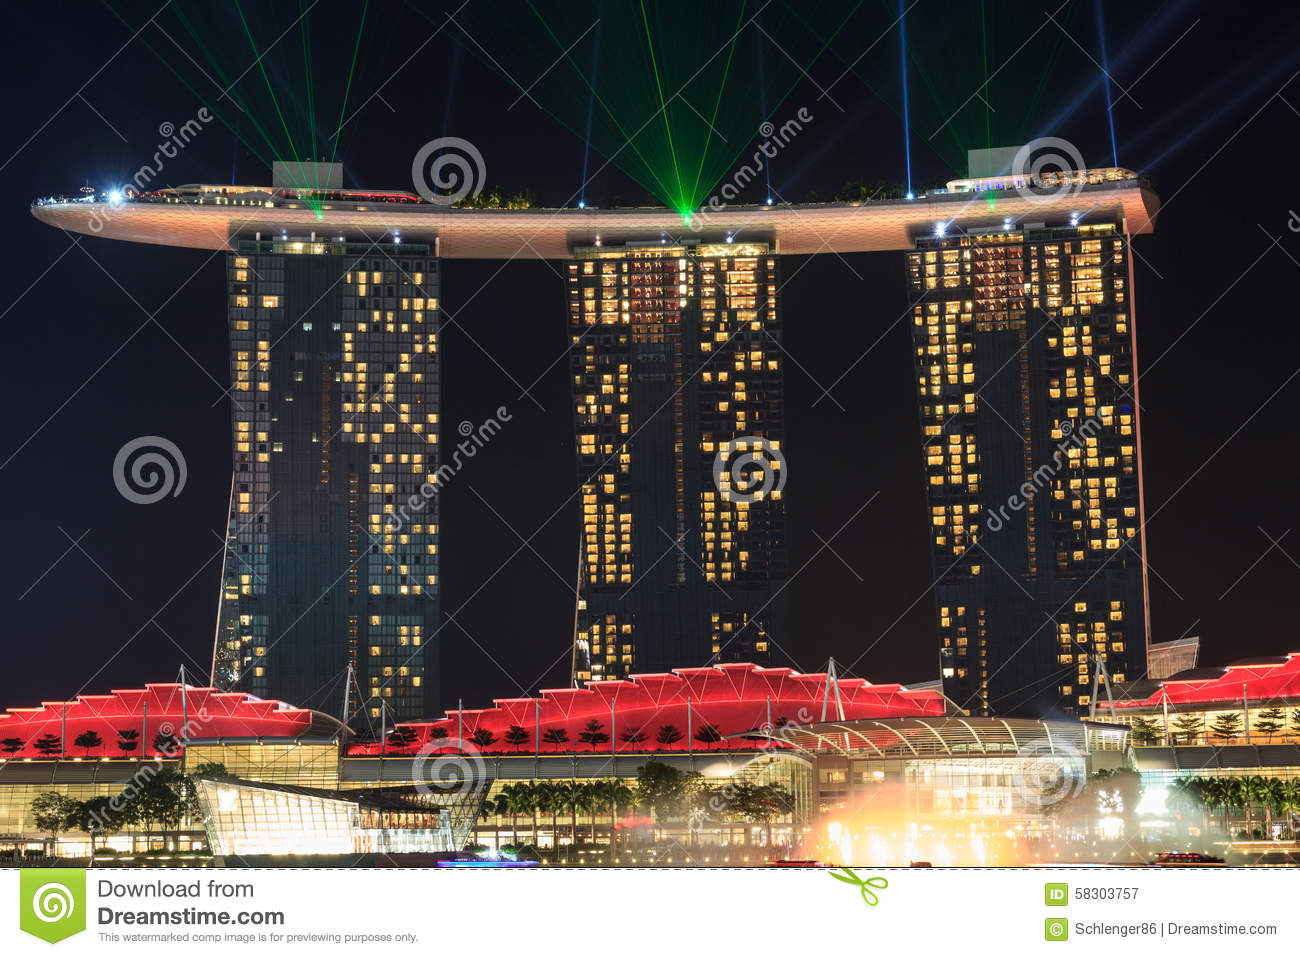 Marina Bay Sands Hotel With Light And Laser Show In Singapore